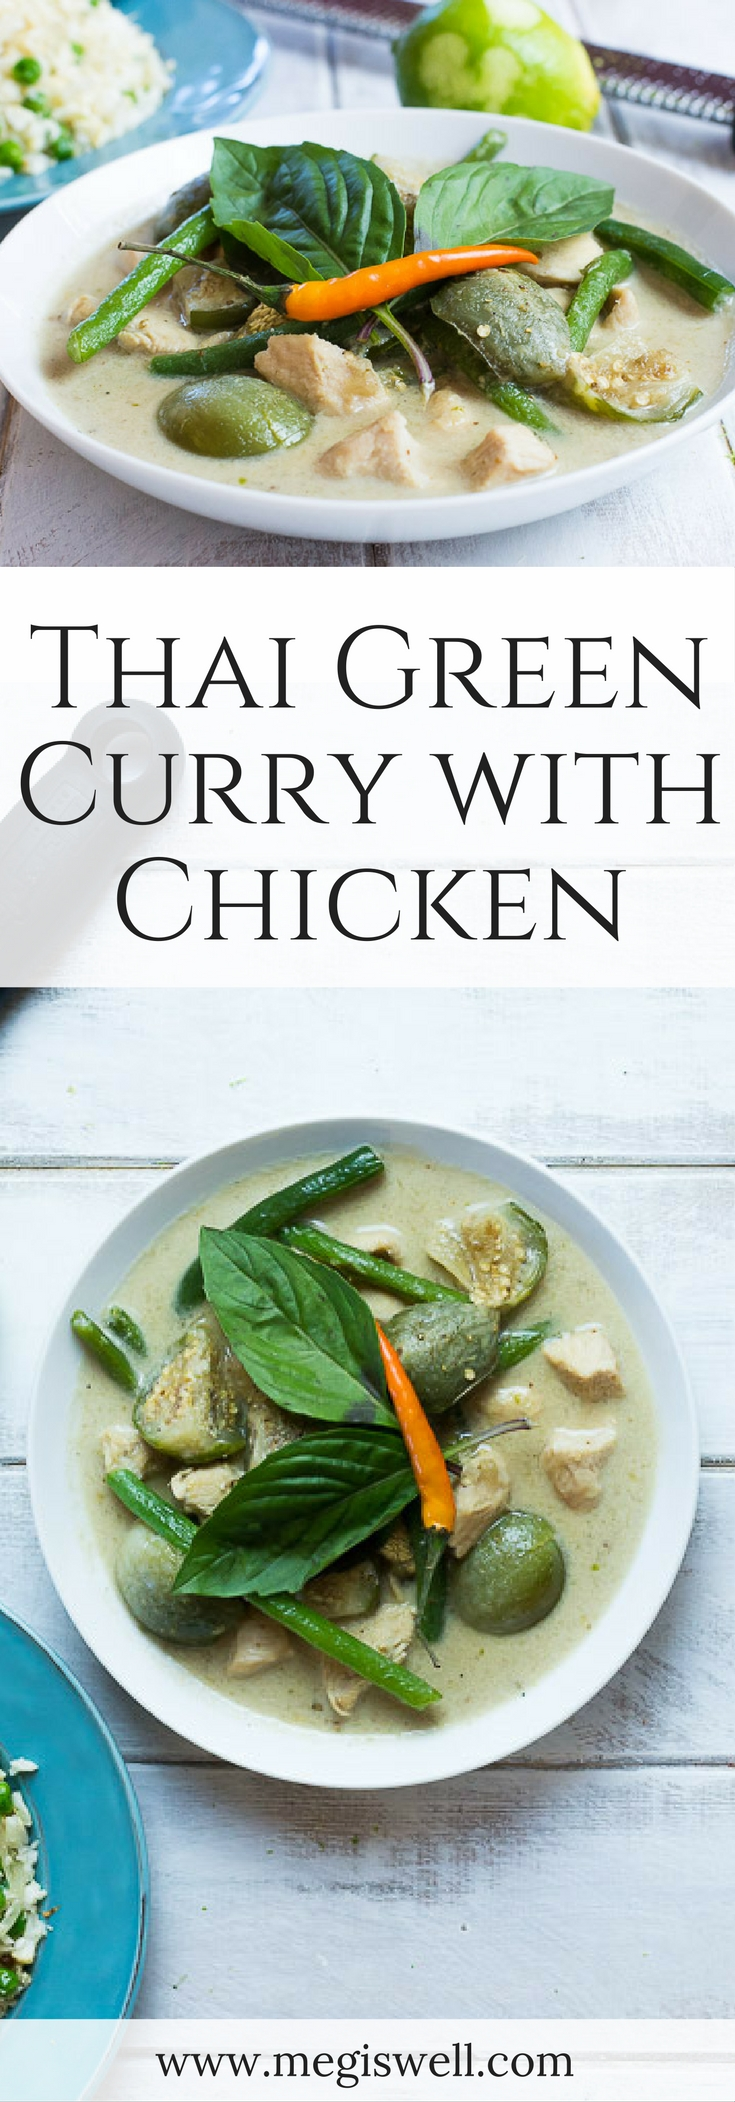 Thai Green Curry with Chicken is spicy, slightly sweet, and fresh tasting. Thai eggplants absorb the curry flavor while green beans provide a slight crunch. Served with a side of cauliflower rice, you have a perfect healthy meal. | www.megiswell.com